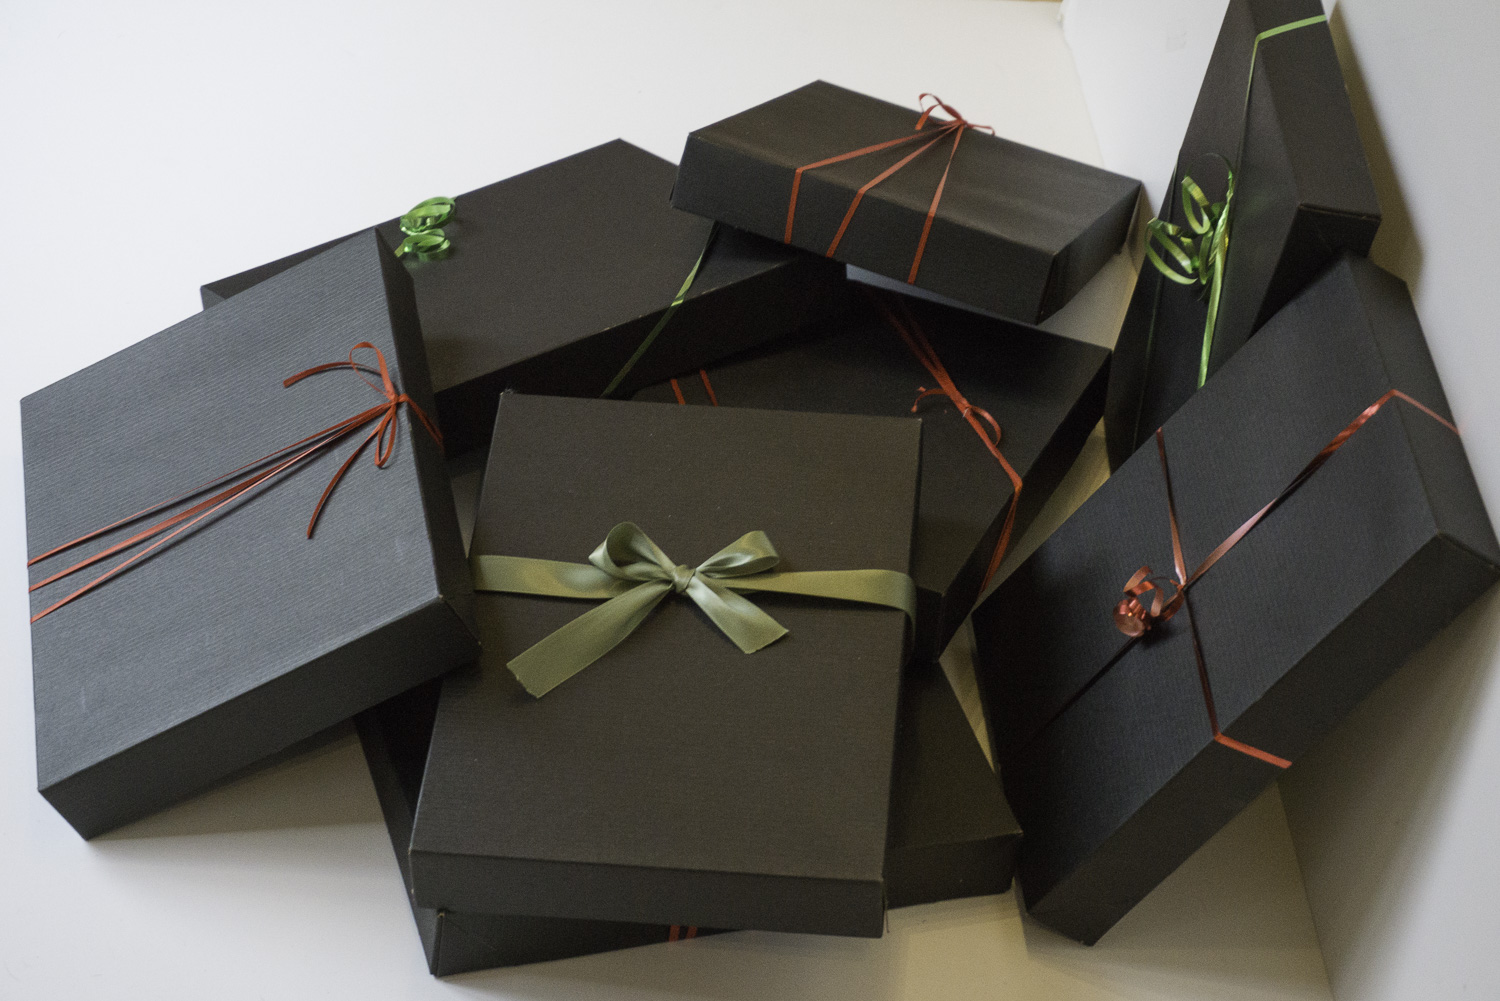 Simple shirts boxes can hold 8 x 10 inch art pieces. Ribbon makes a nice finishing touch. These tuxedo striped shirt boxes are available from Nashville Wraps. Each box cost $0.51.